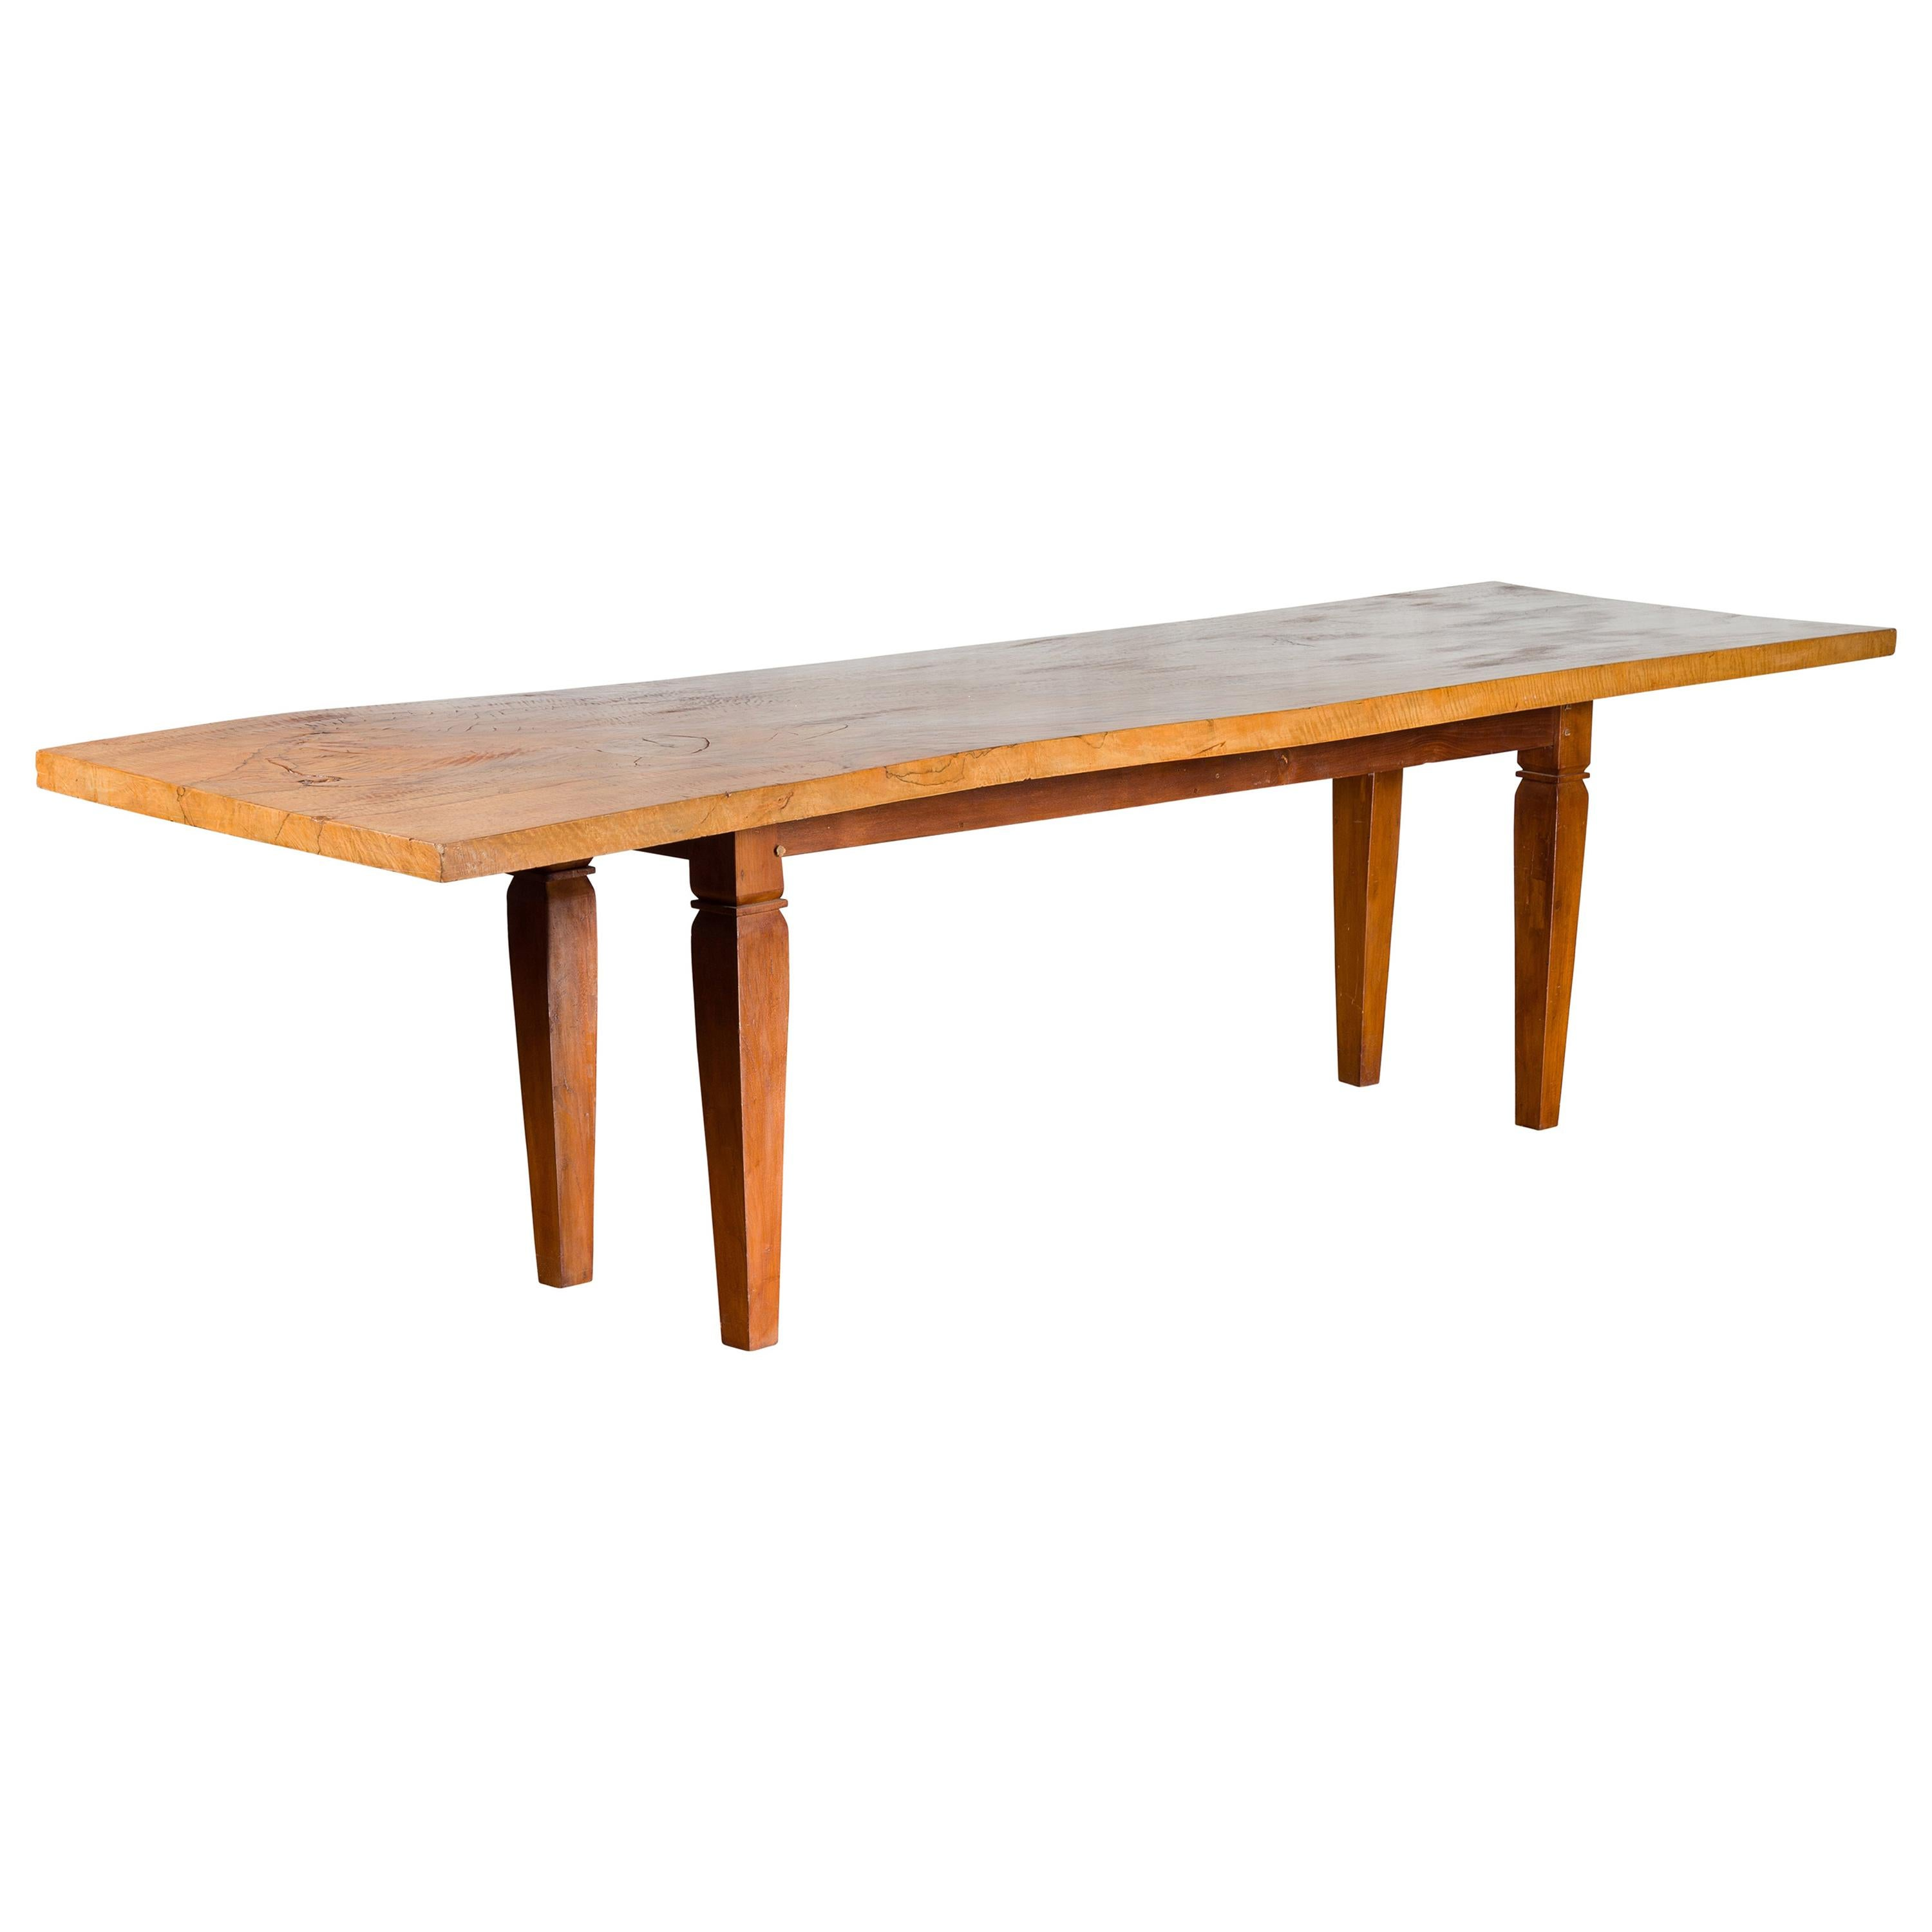 Large Vintage Indonesian Dining Table with Mango Wood Top and Tapered Legs